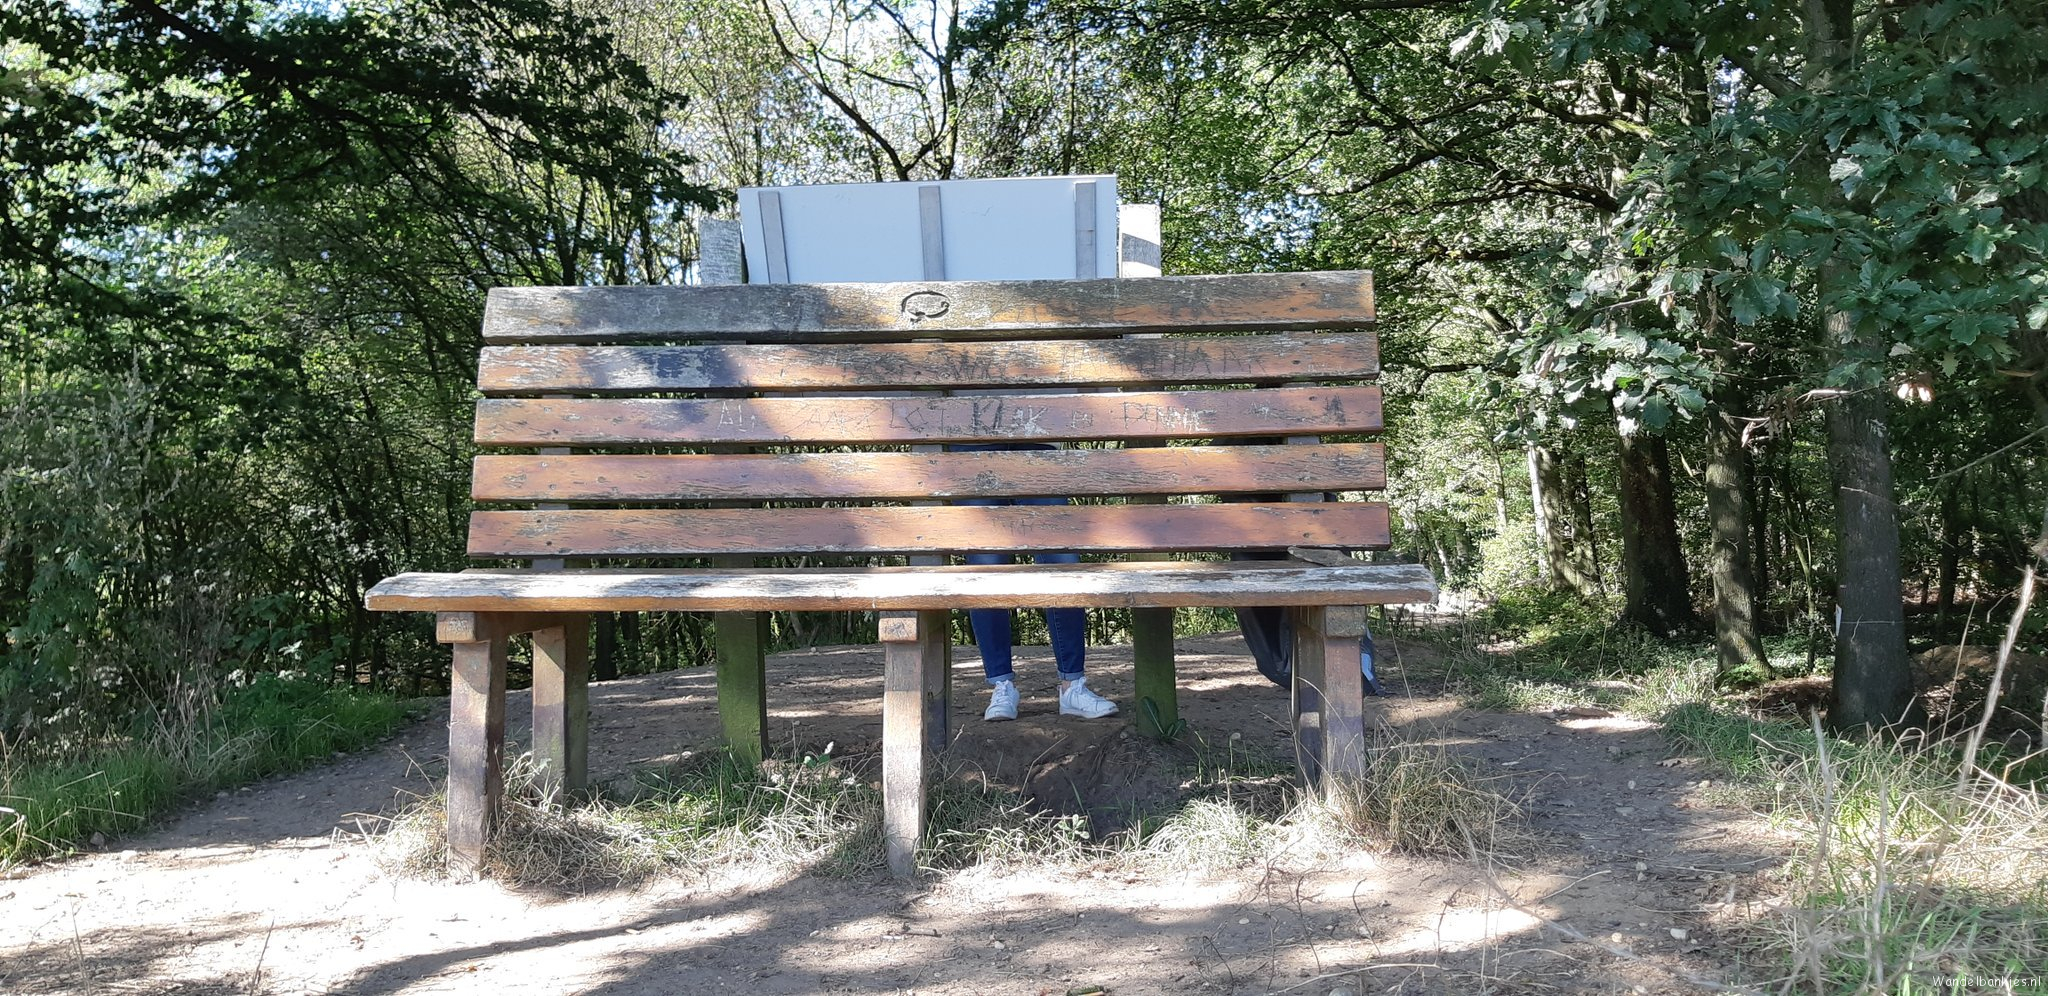 rt-nieuwenhuis7b-walking benches-bench-with-a-view-over-small-america-https-t-co-jz61vvb5l0